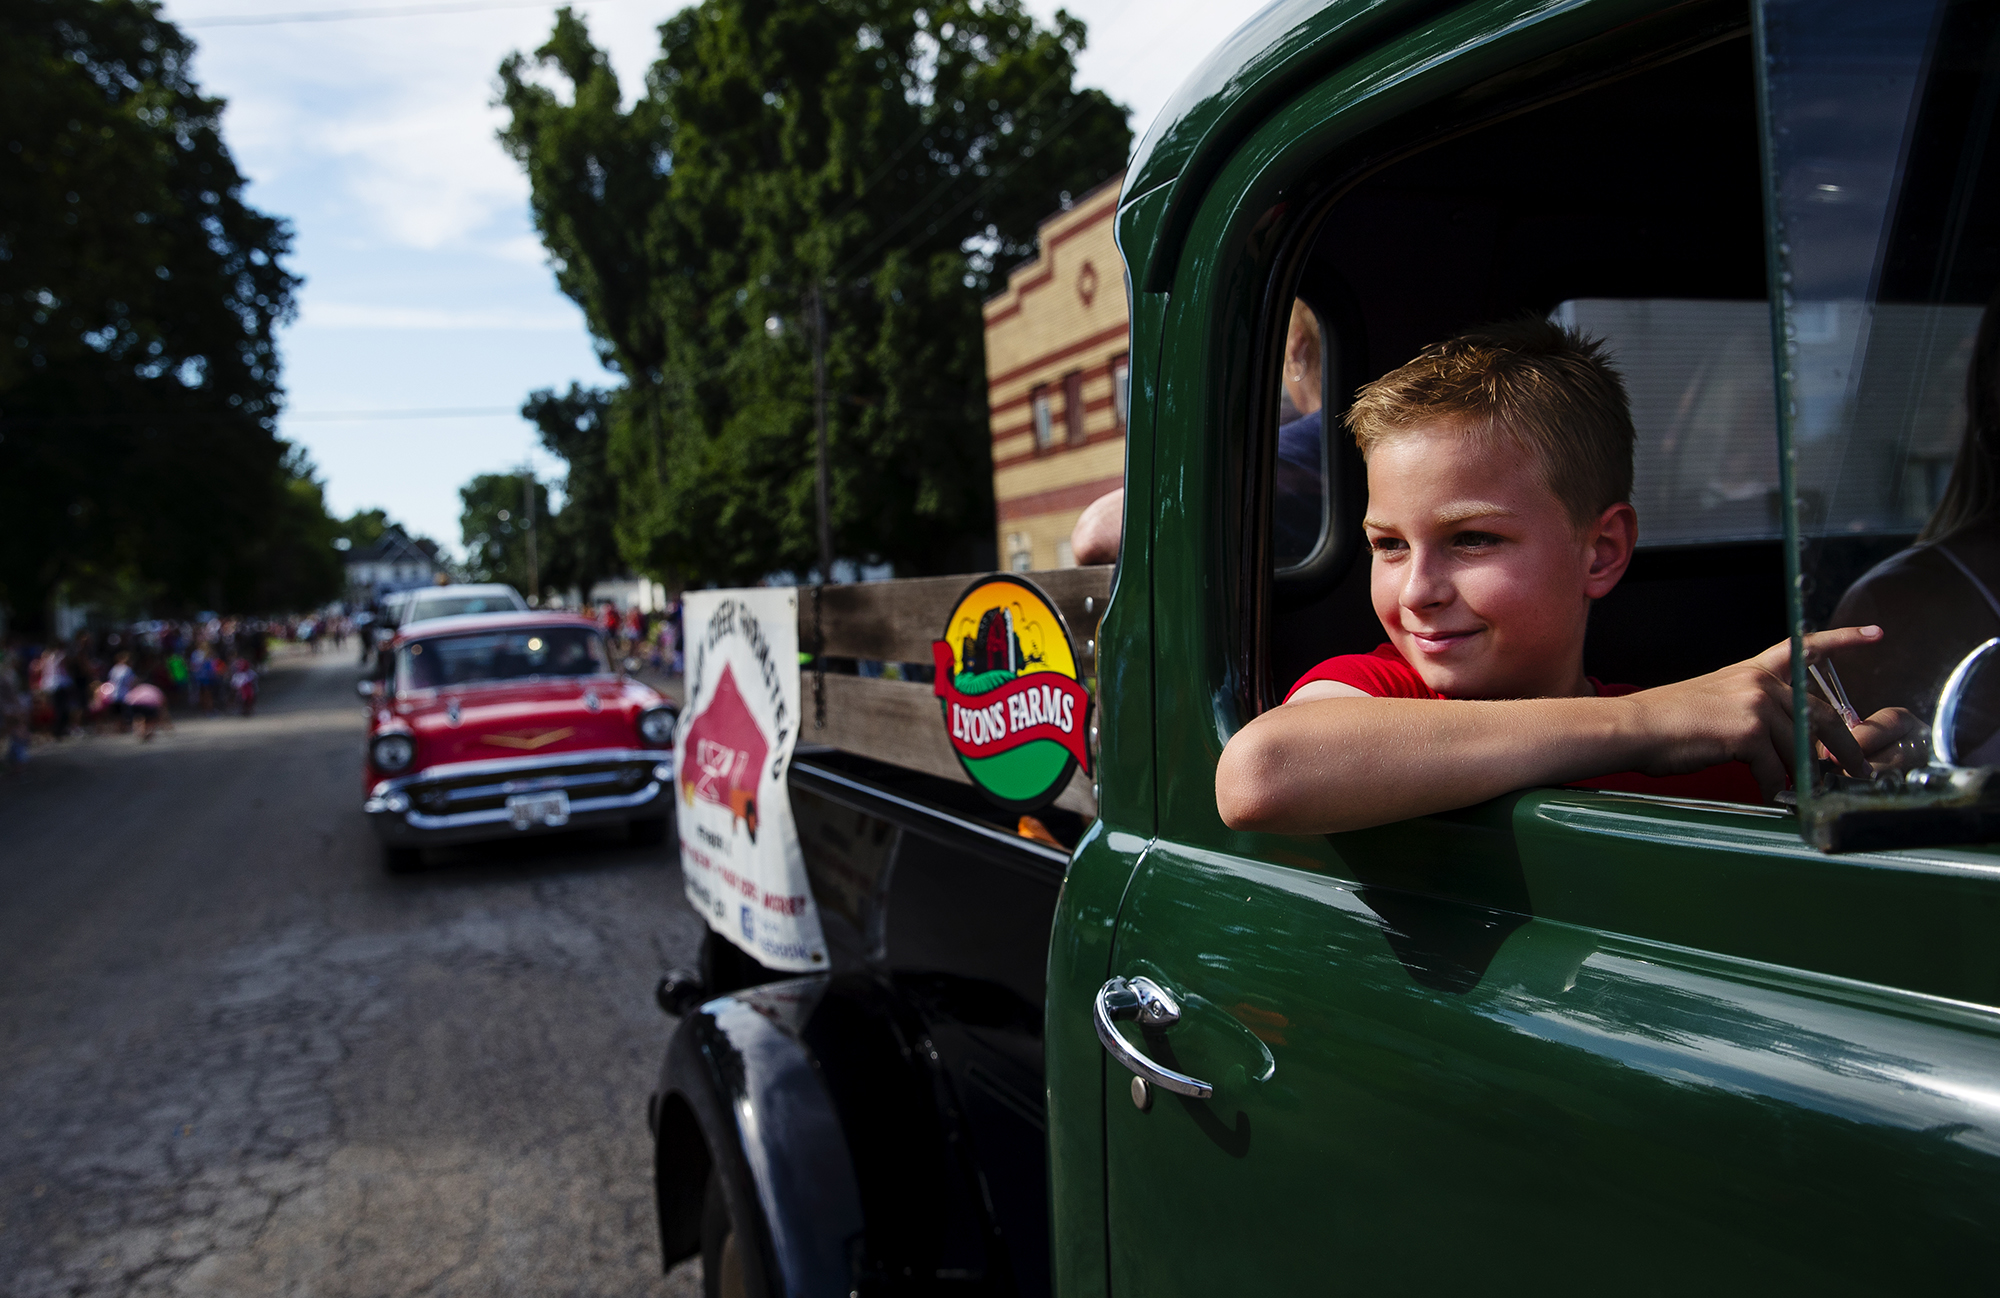 Jack Legner watches out the window a 1949 Dodge pick-up truck from Lyons Farms as he rides along during the 50th Annual Greenview Labor Day Celebration Monday, Sept. 3, 2018. [Ted Schurter/The State Journal-Register]